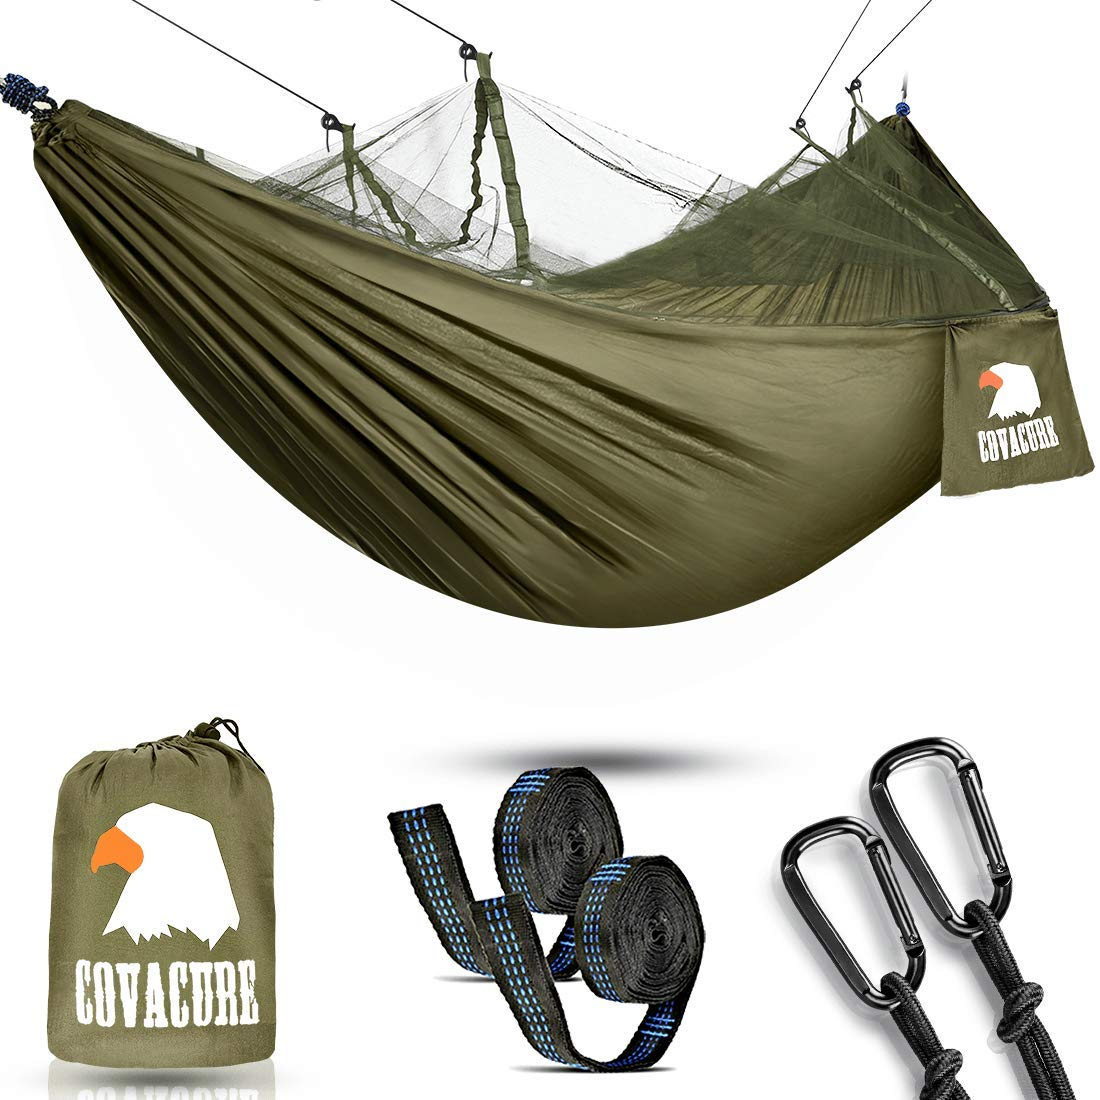 Camping Hammock with Net - Lightweight COVACURE Double Hammock, Portable Hammocks for Indoor, Outdoor, Hiking, Camping, Backpacking, Travel, Backyard, Beach by Covacure